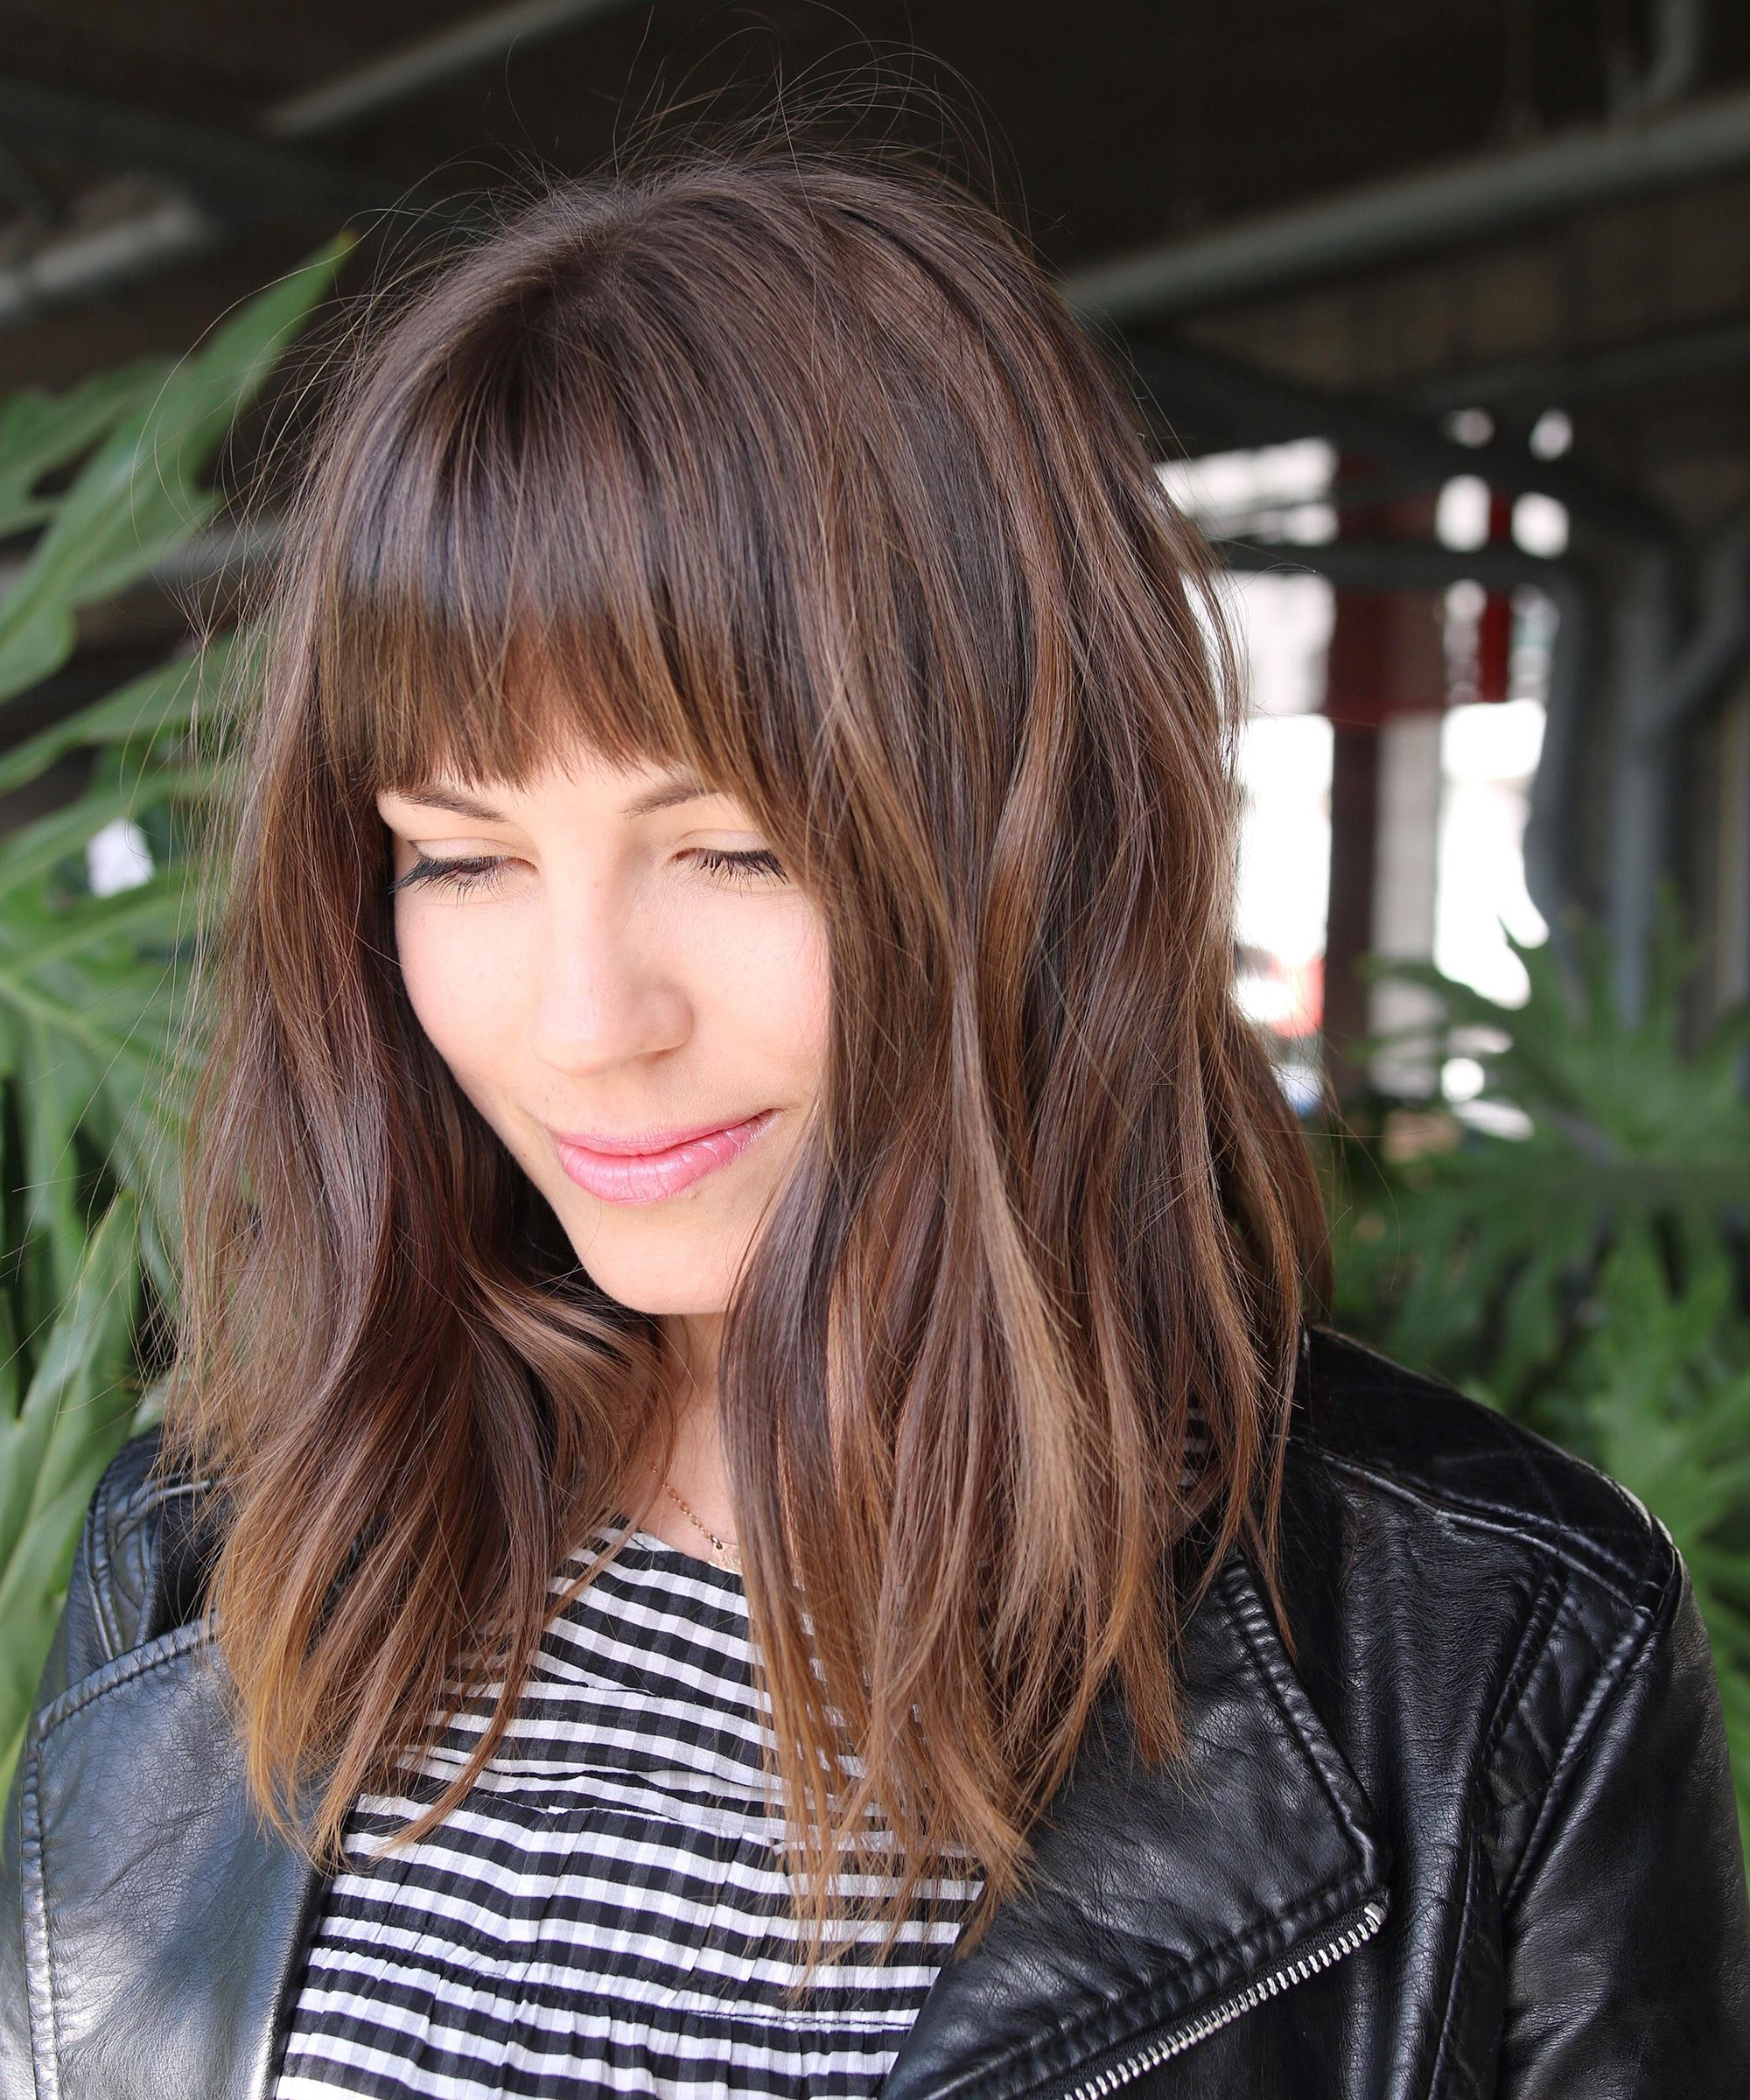 Hair Ideas Trends 2018 – Accessories Shag Blunt Bangs For Ladies Short Hairstyles With Fringe (View 13 of 25)